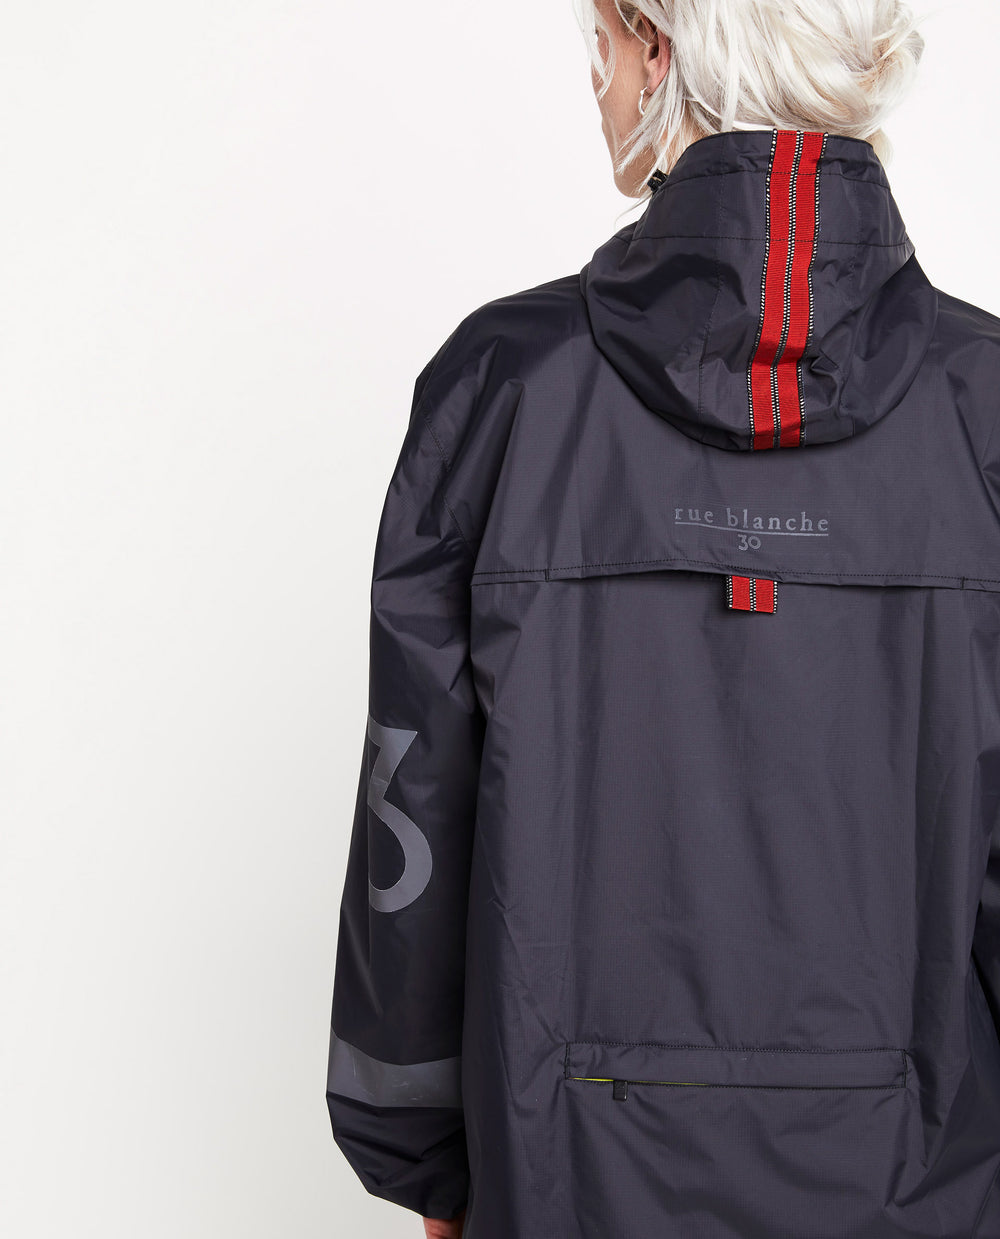 30 years - K-Way raincoat - AW17 - Rue Blanche - rueblanche.com